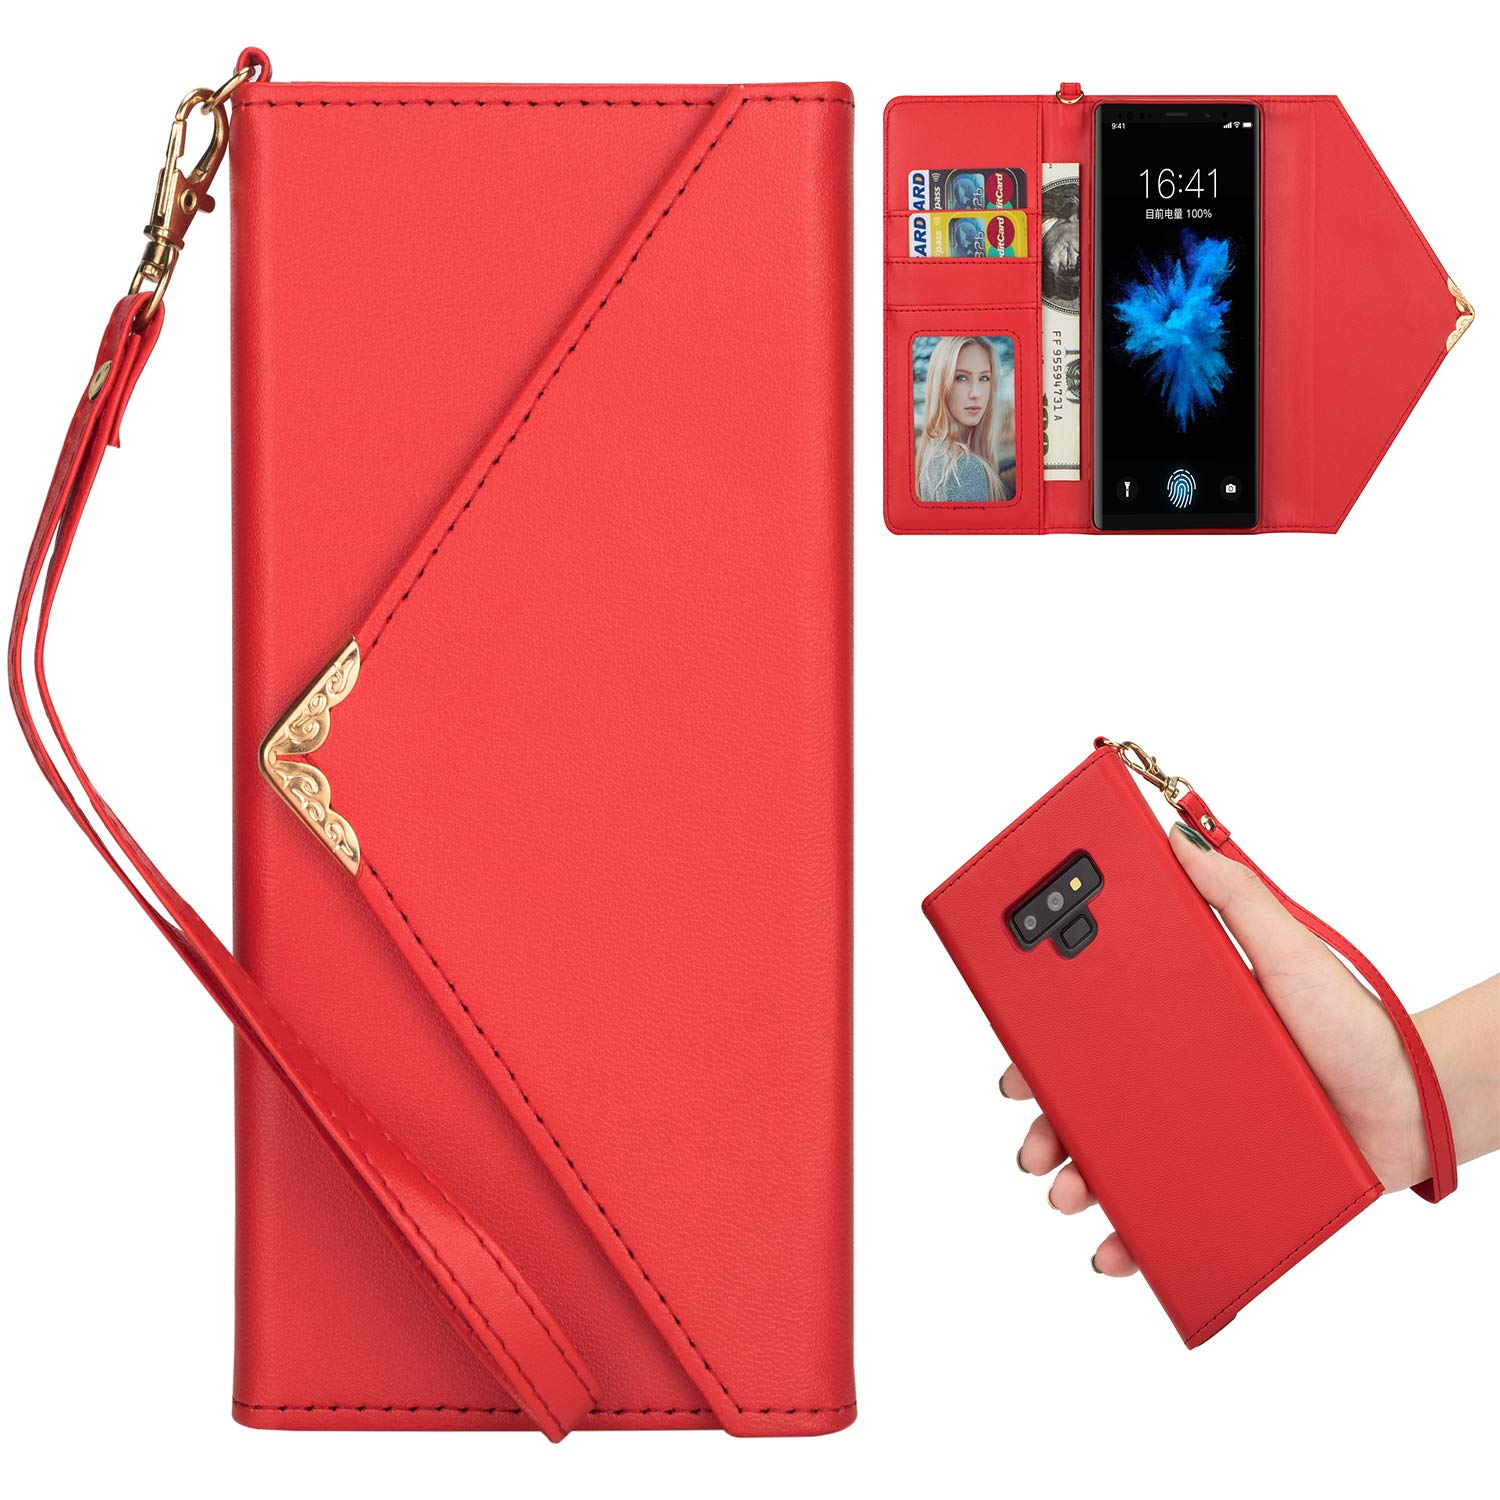 Shinyzone Stylish Envelope Design Case for Samsung Galaxy Note 9,Premium Leather Wallet Case with Credit Card Holder & Wrist Strap Handbag Magnetic Flip Cover,Rose Red